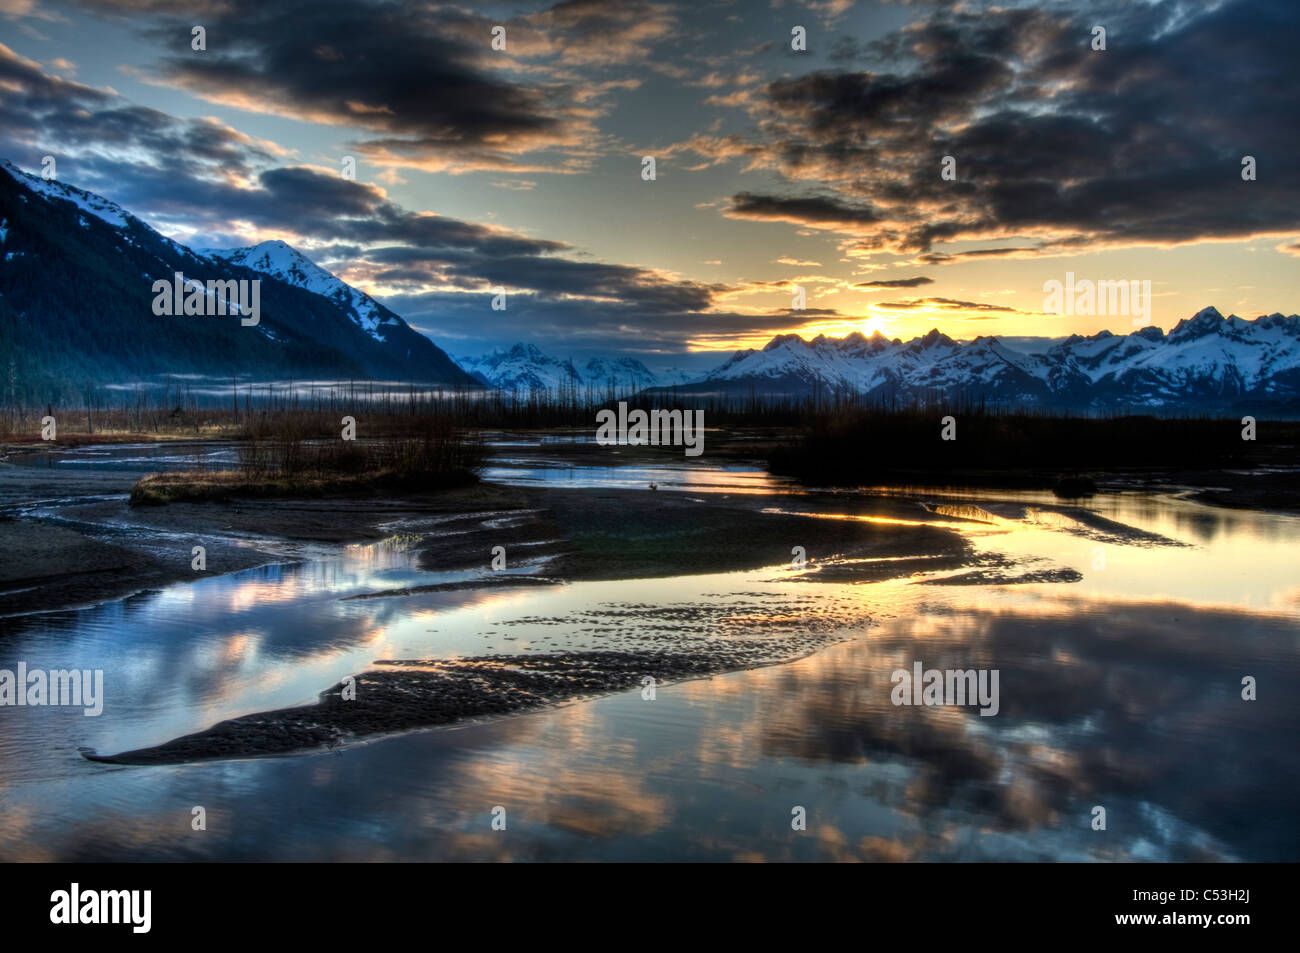 Morning light over the Chugach Mountains reflects in the braided Scott River in the Chugach National Forest, Alaska, - Stock Image